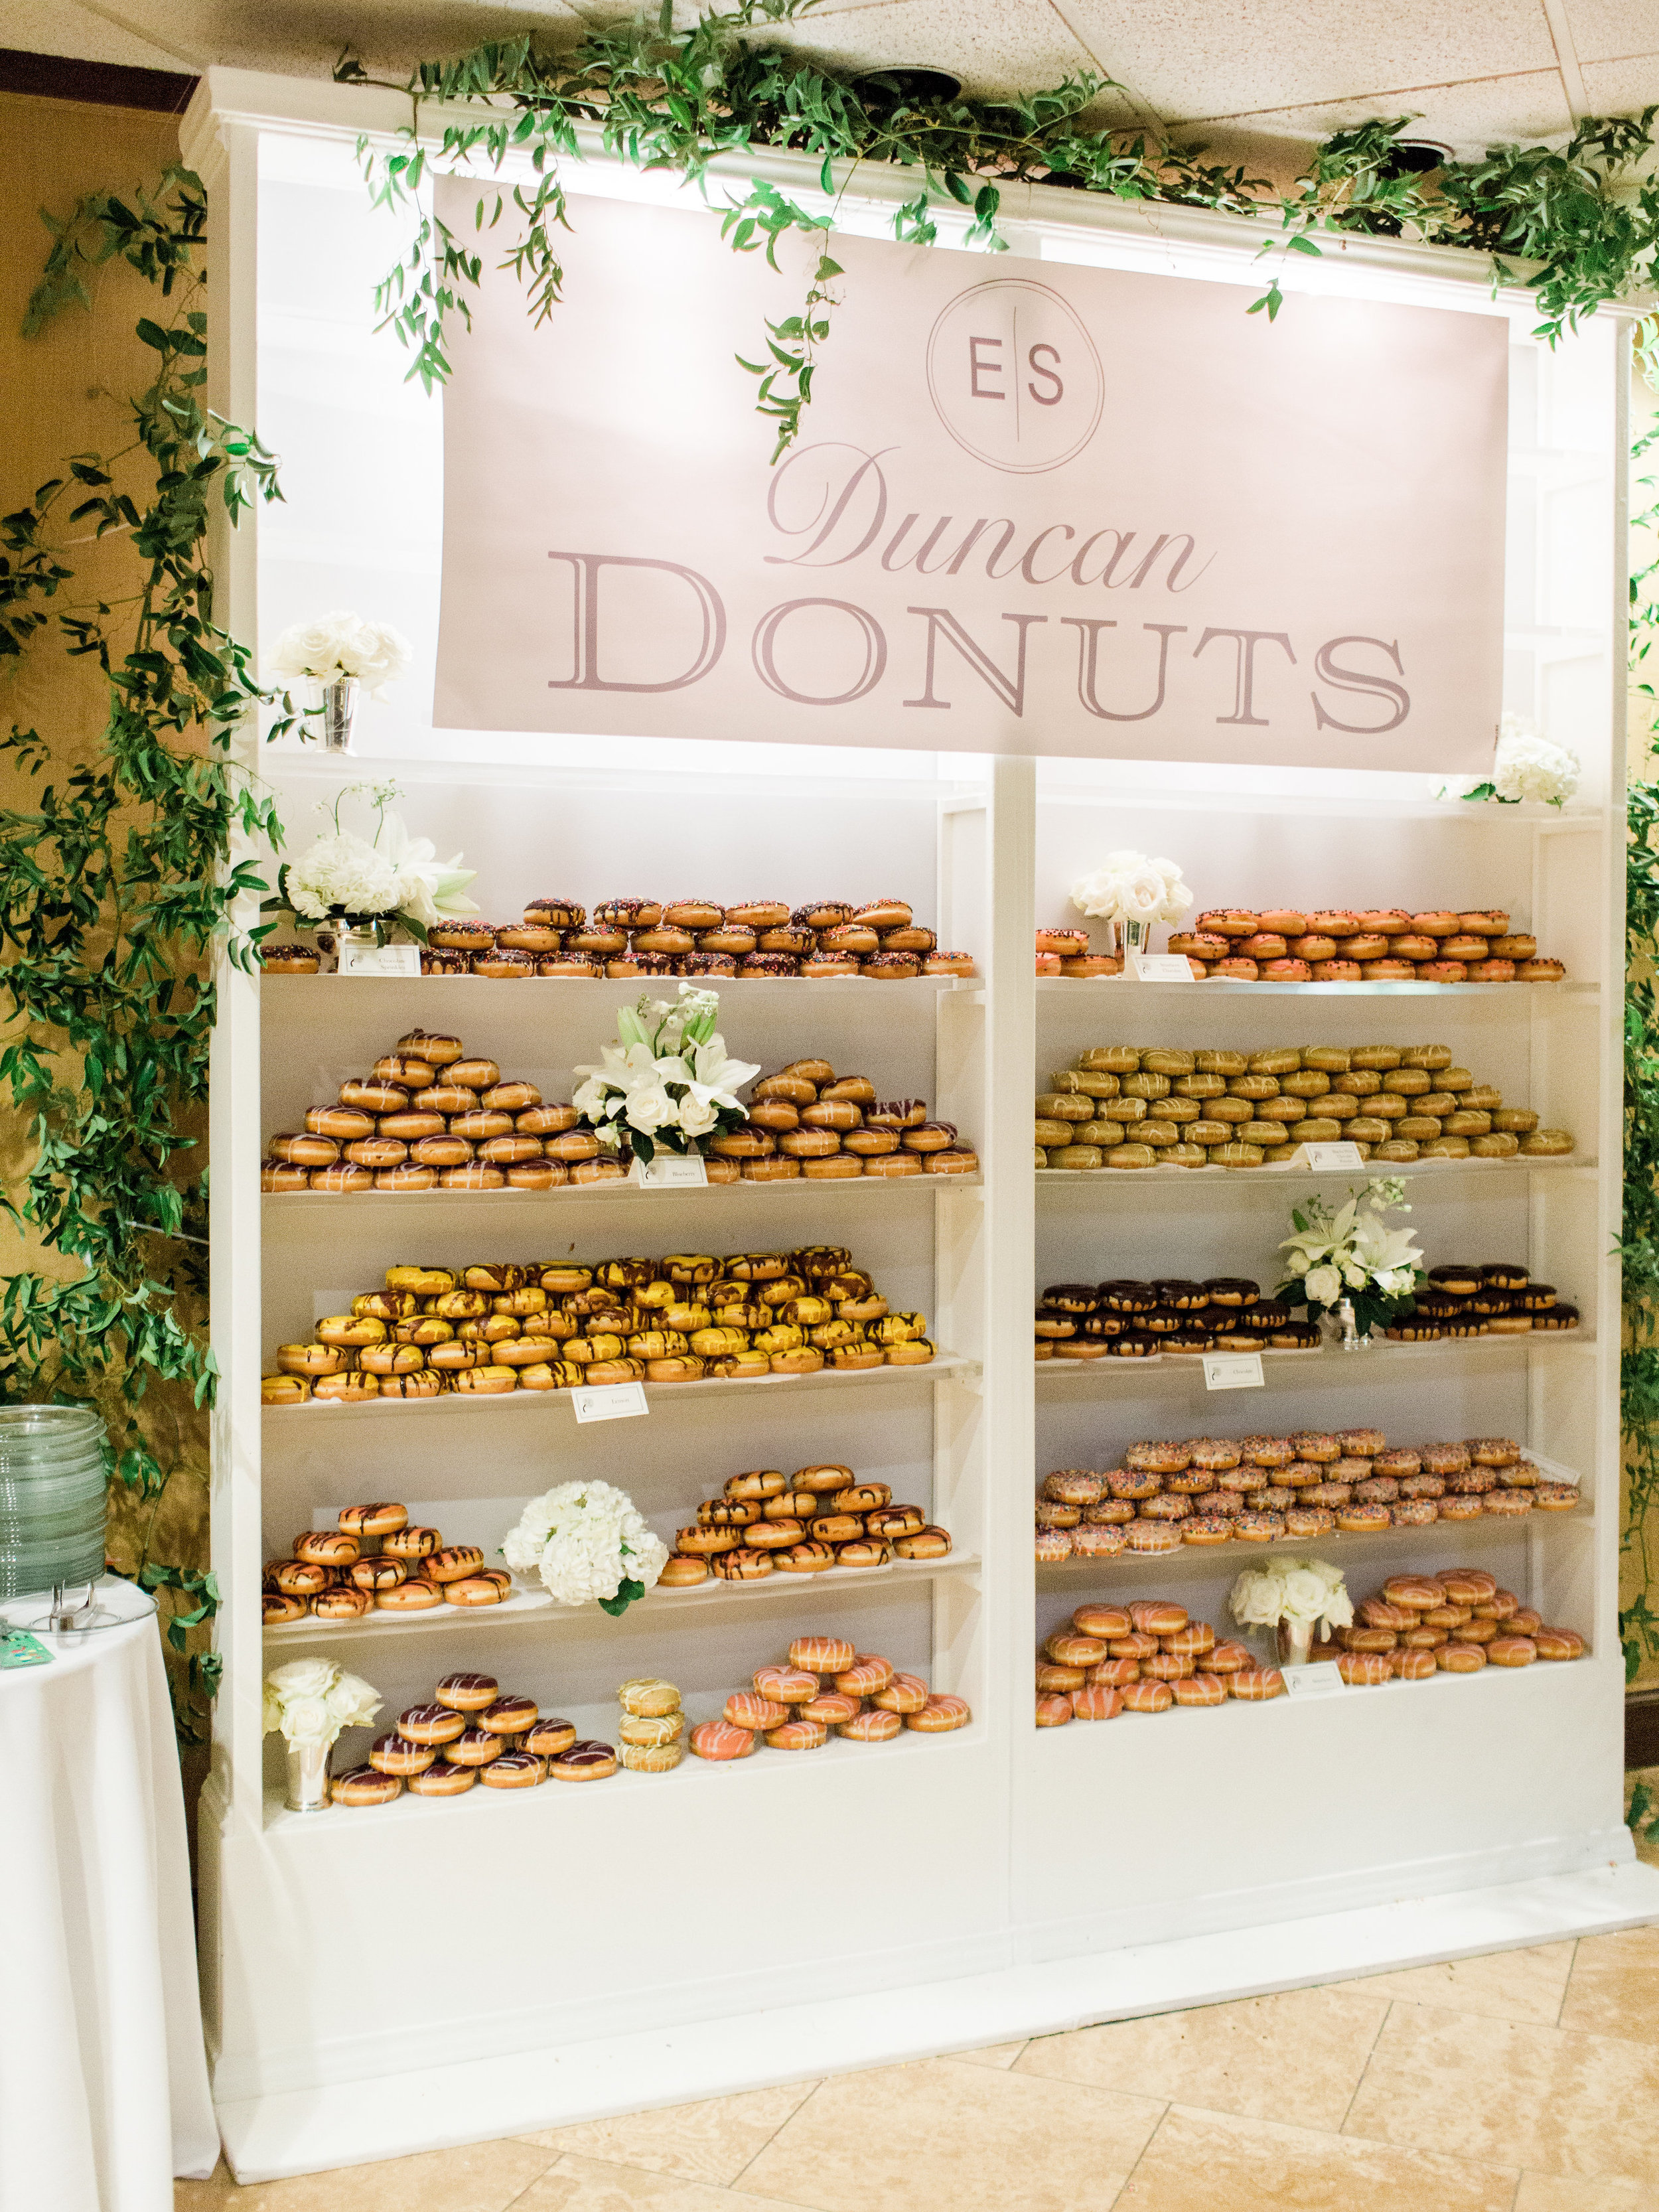 """Instead of a groom's cake, we opted to have """"Duncan Donuts""""!"""